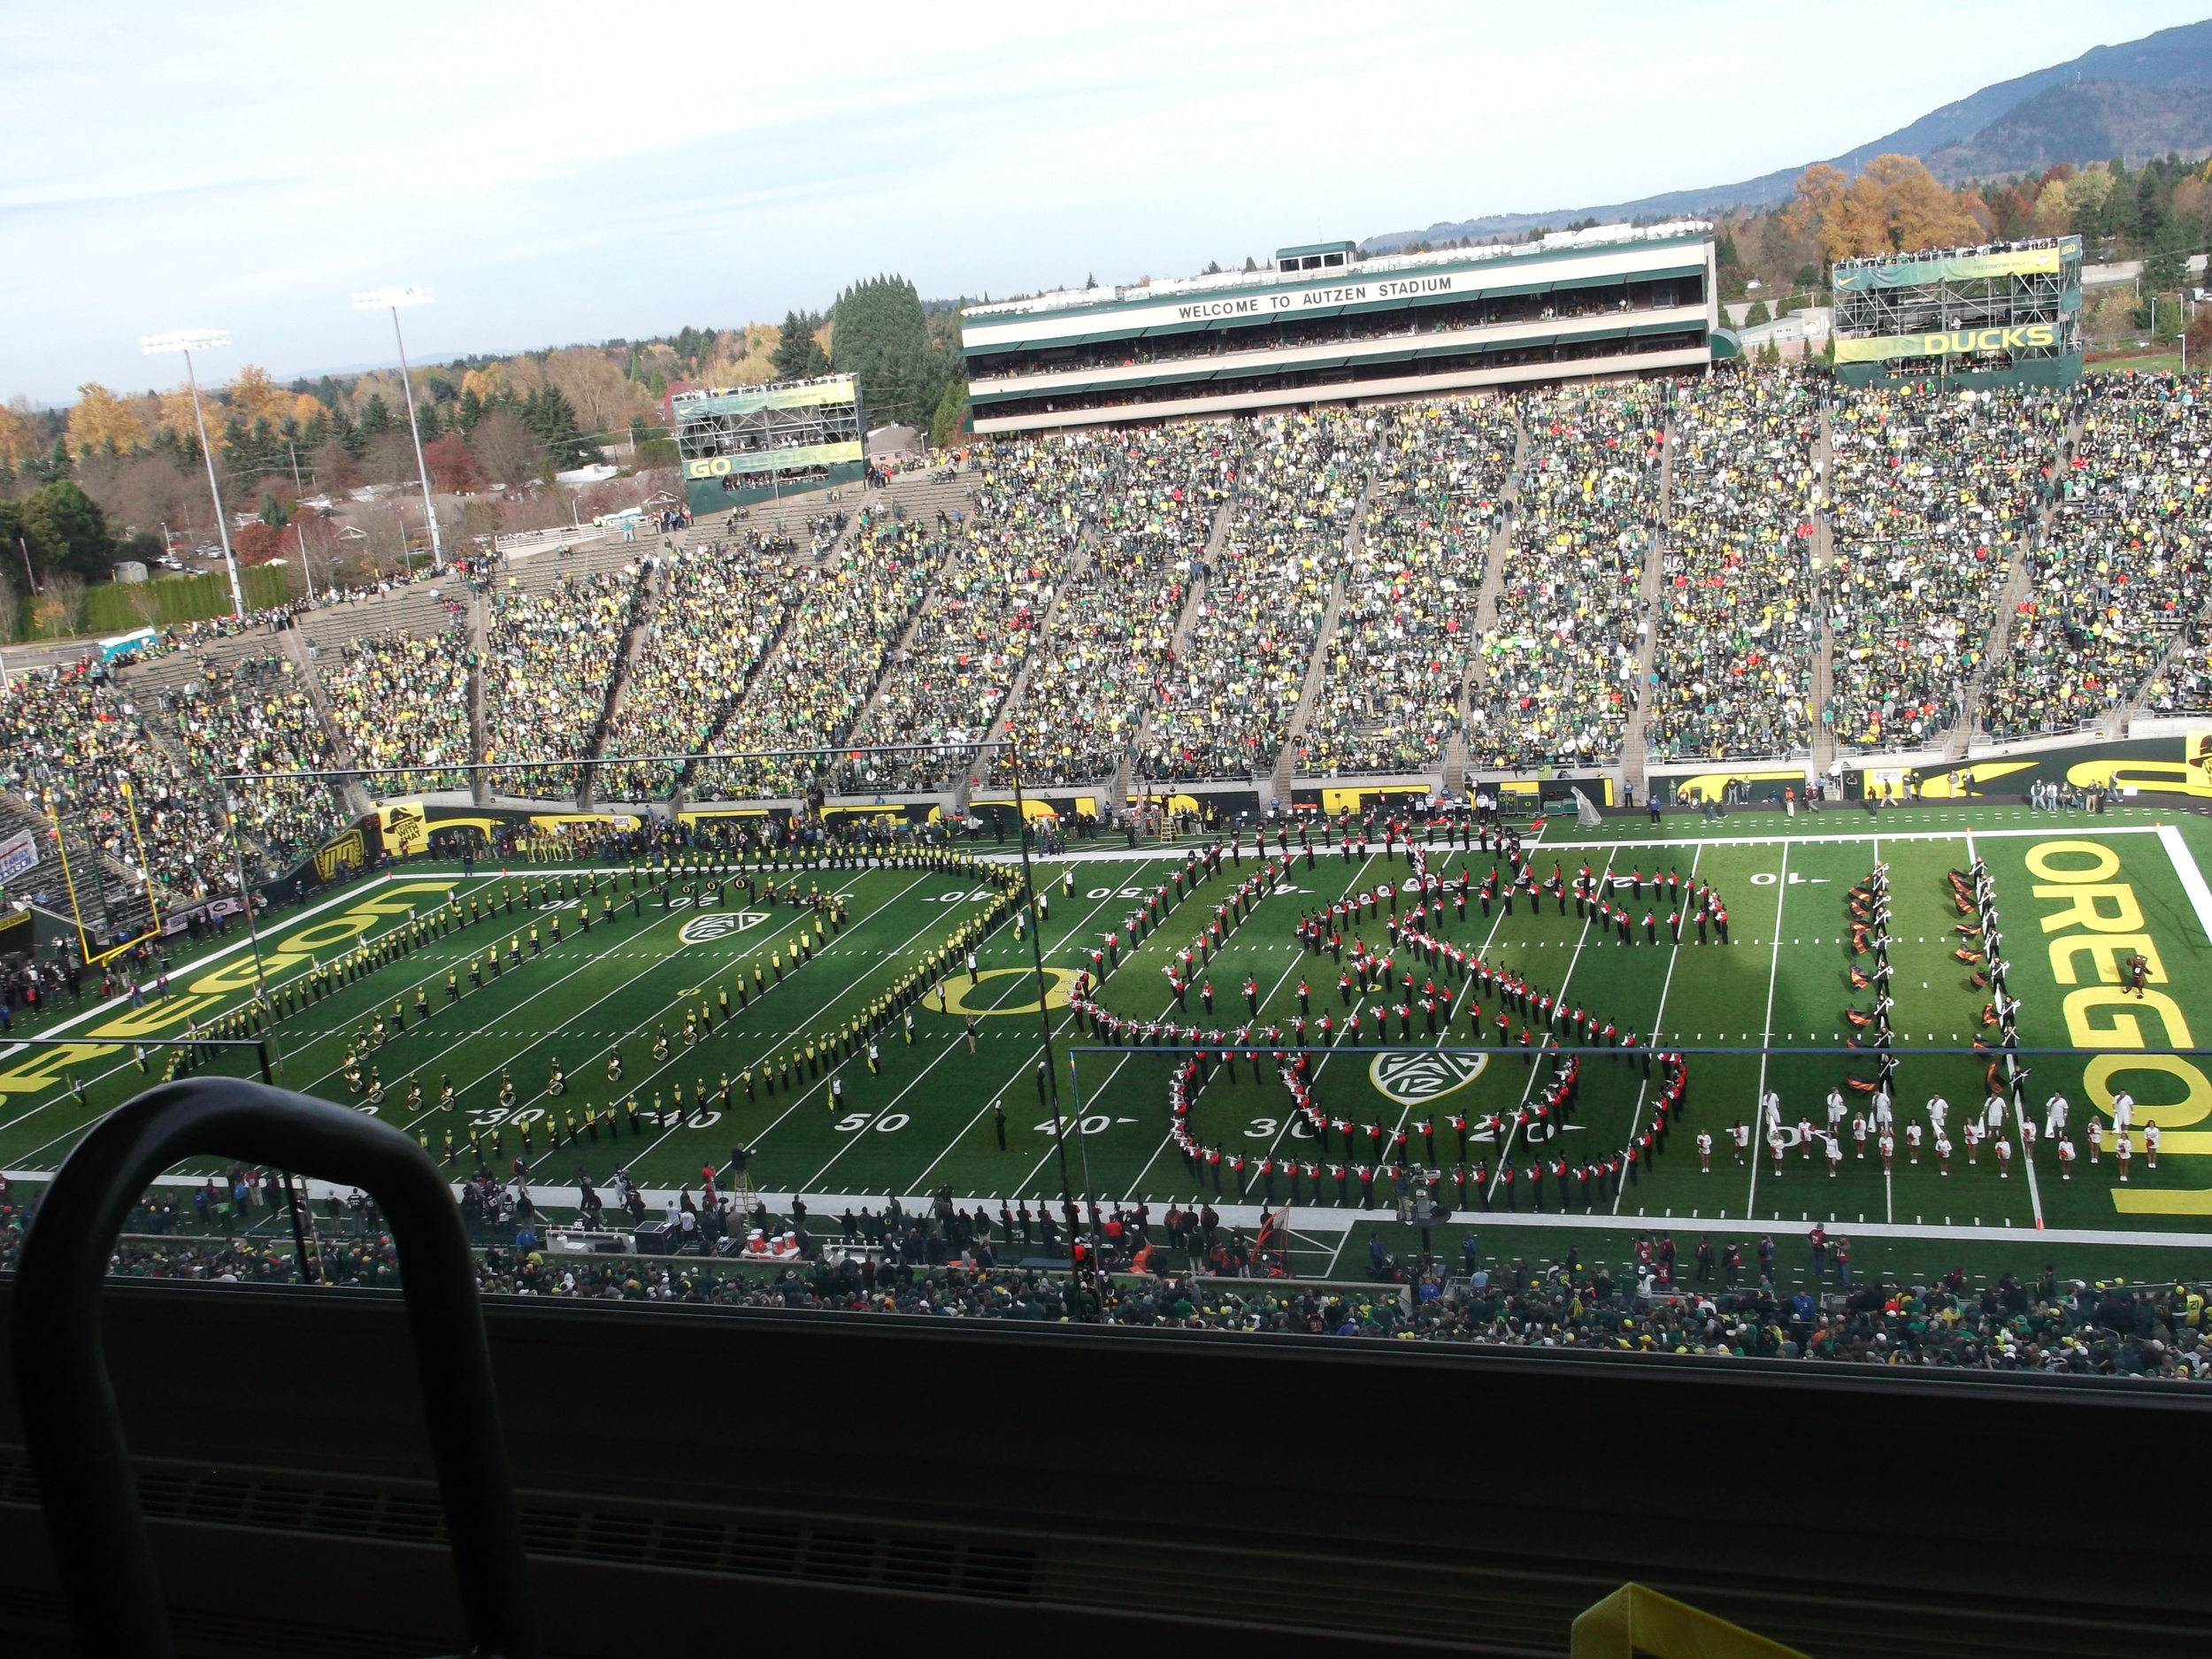 A sport event. Also a marching band. (Fall 2011)